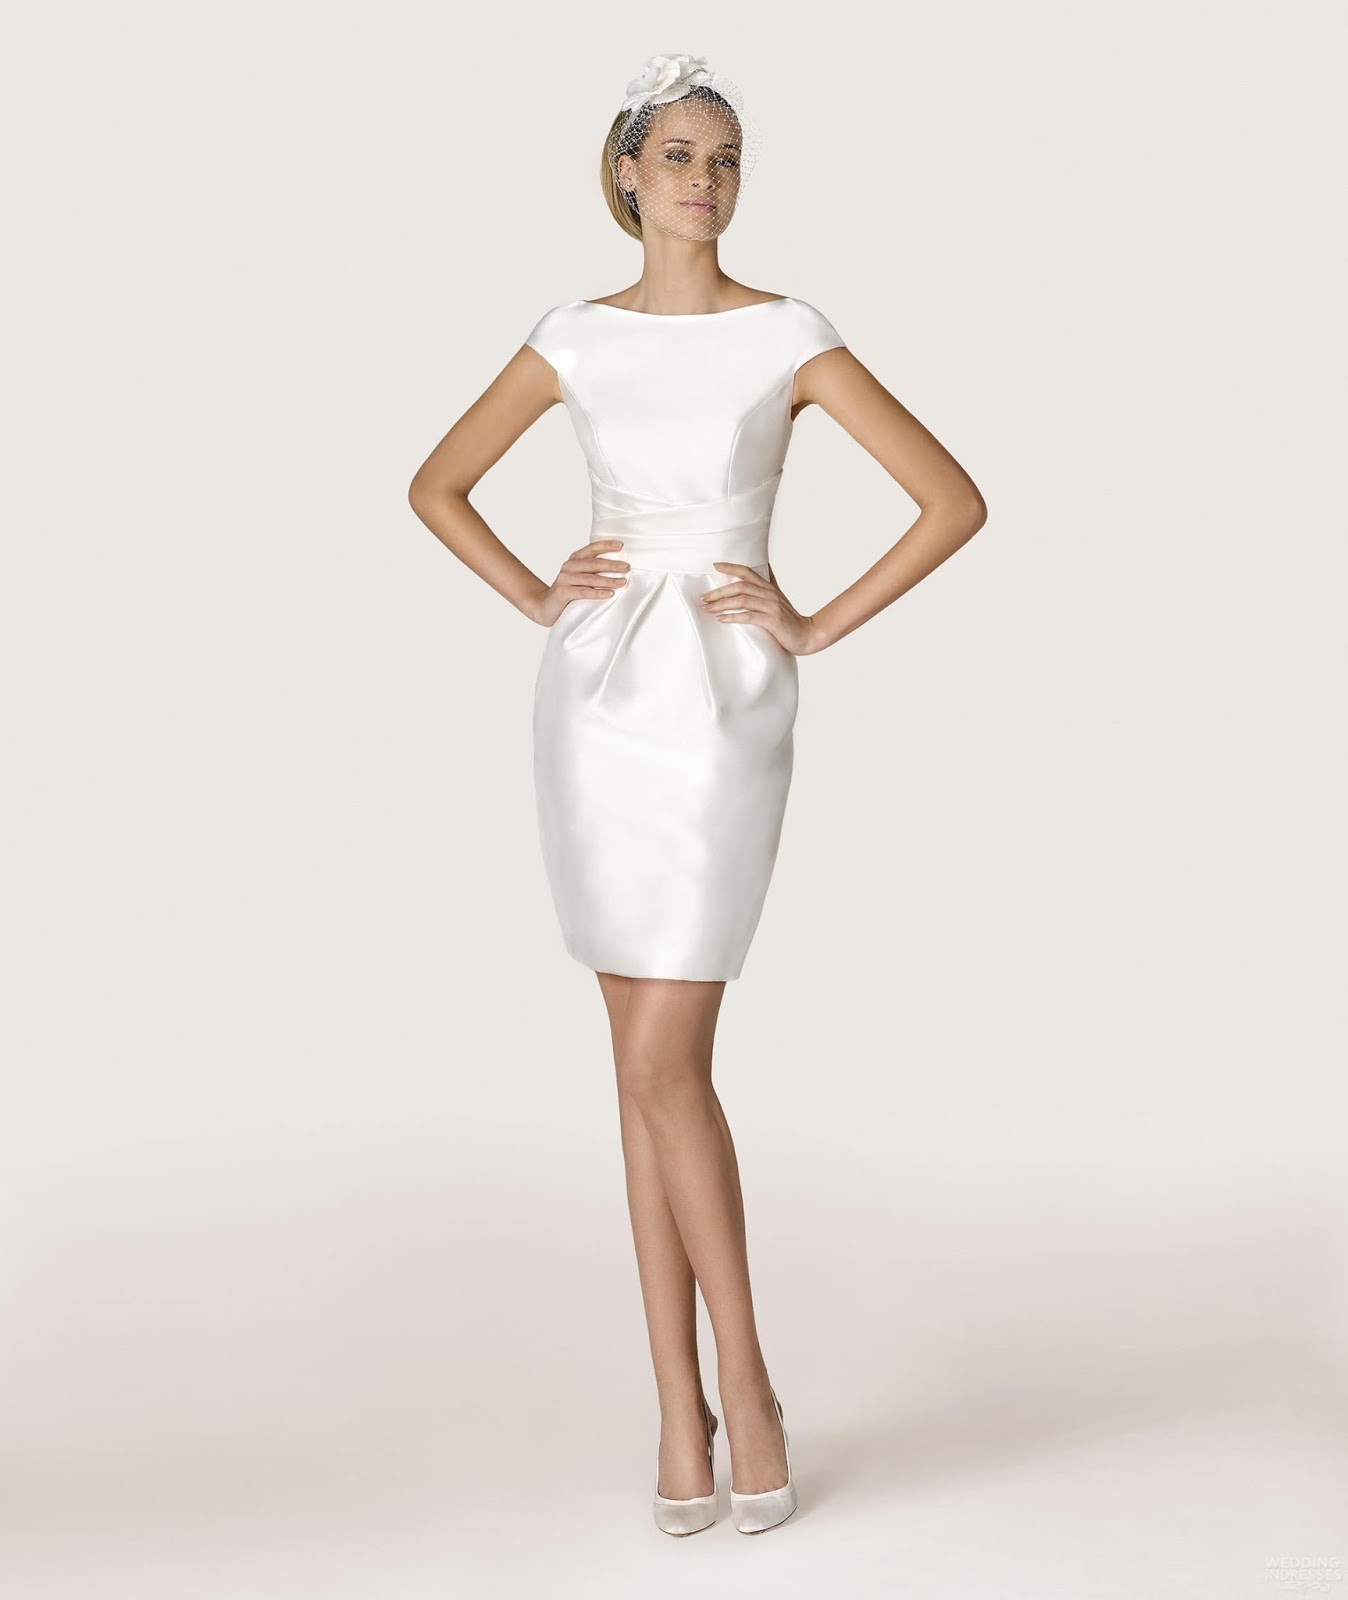 Short Wedding Dresses For Older Brides Formal Wear Women Or Have Certain Areas Such As The One With Pant Suit A